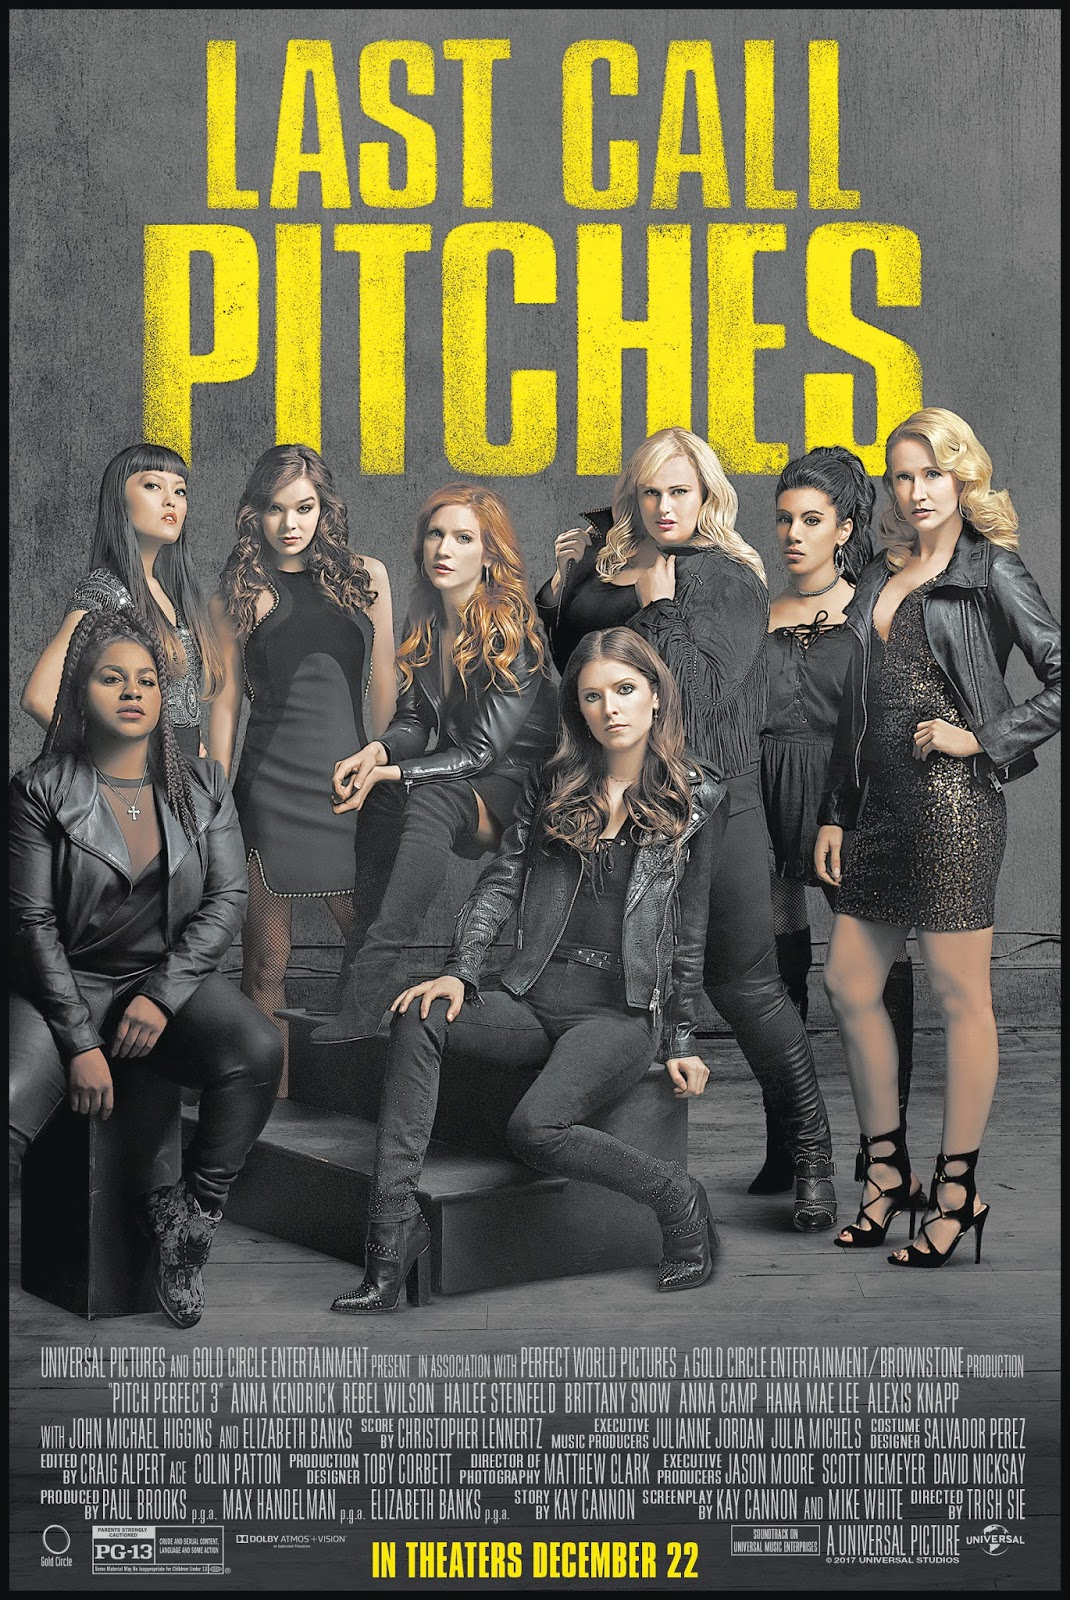 enter for a chance to win passes to see pitch perfect 3 in